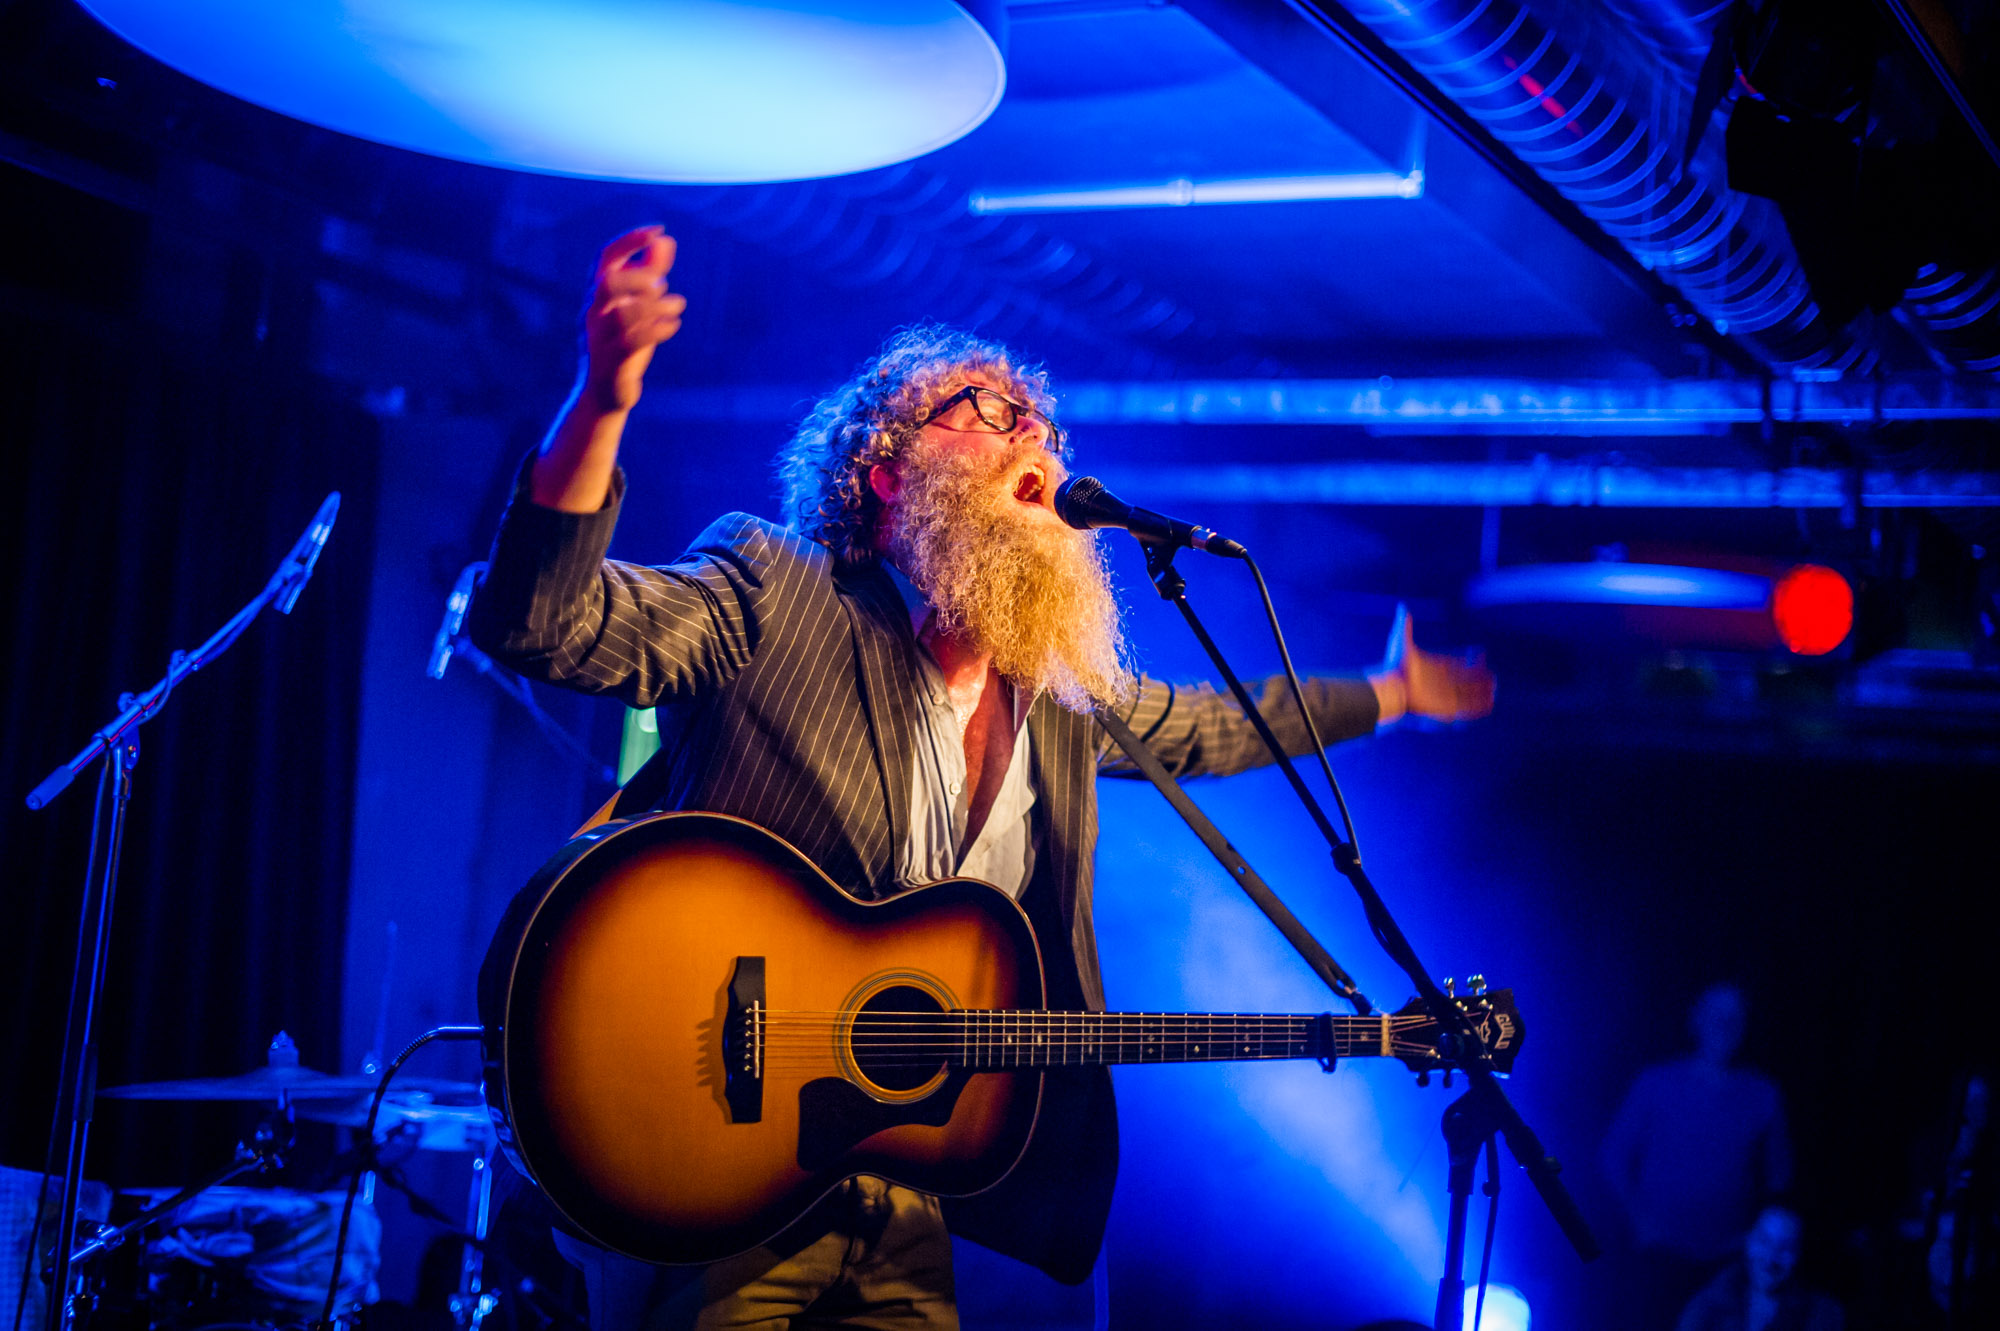 Ben Caplan at This is Tigerr Fest #1 in Papiersaal Zurich